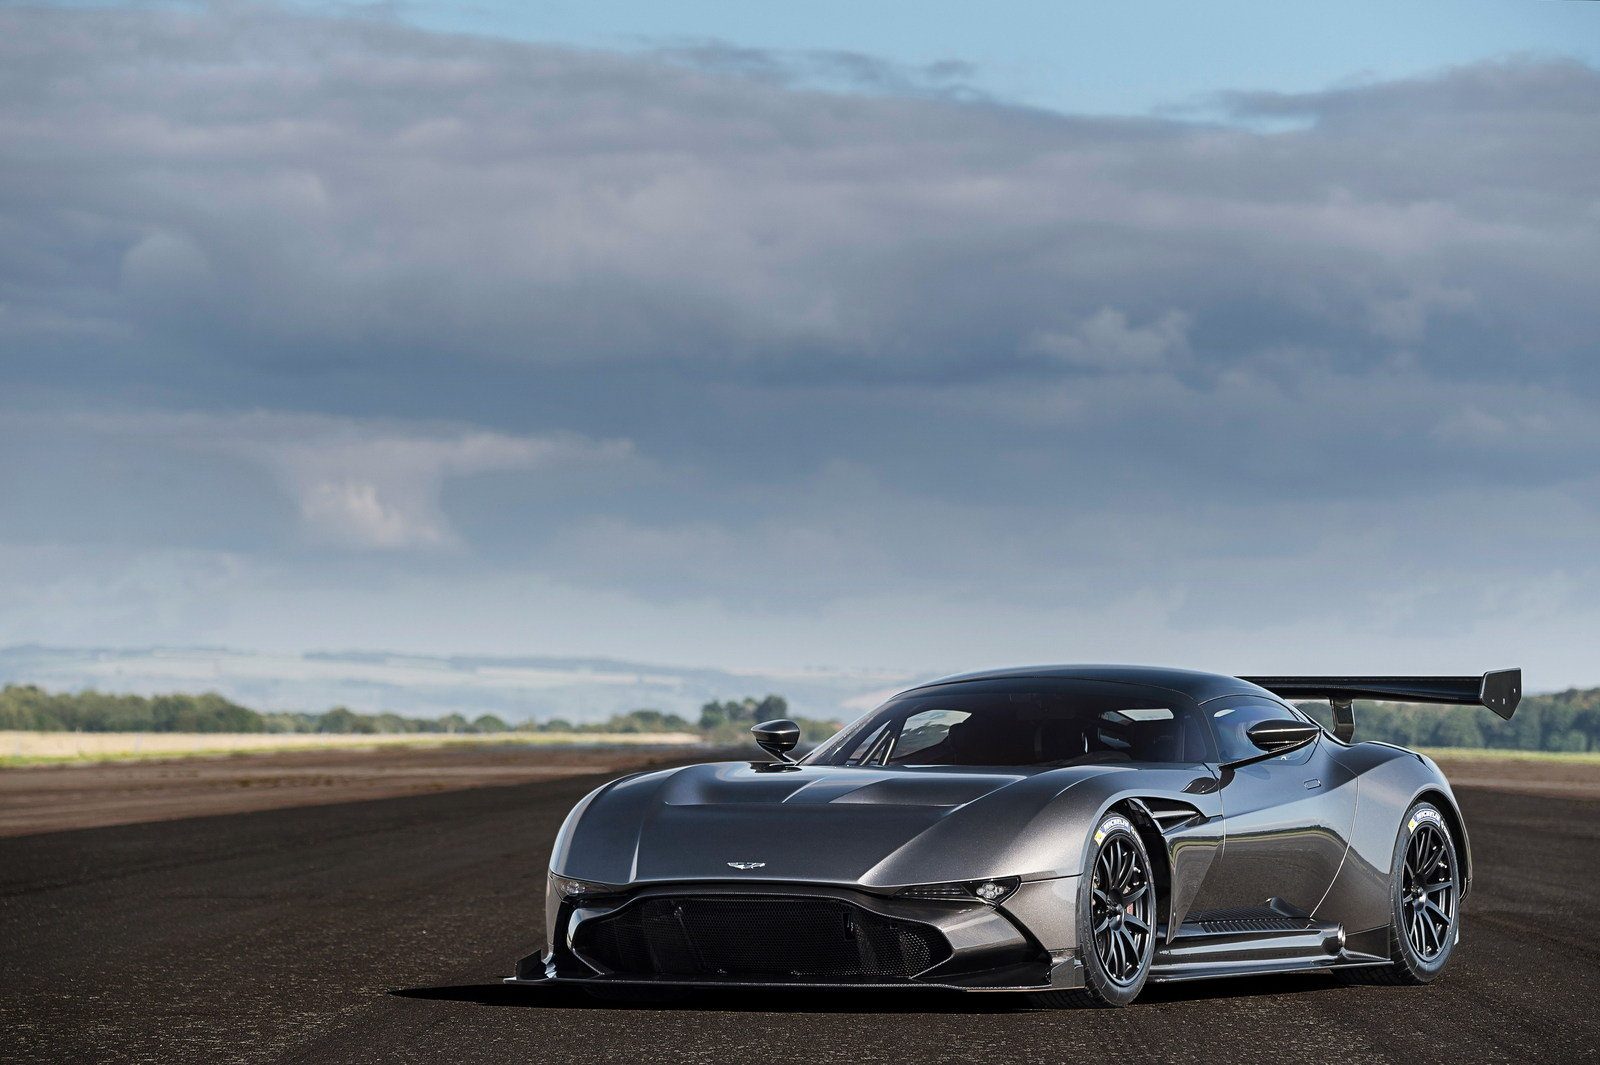 2016 aston martin vulcan picture 649152 car review top speed. Black Bedroom Furniture Sets. Home Design Ideas